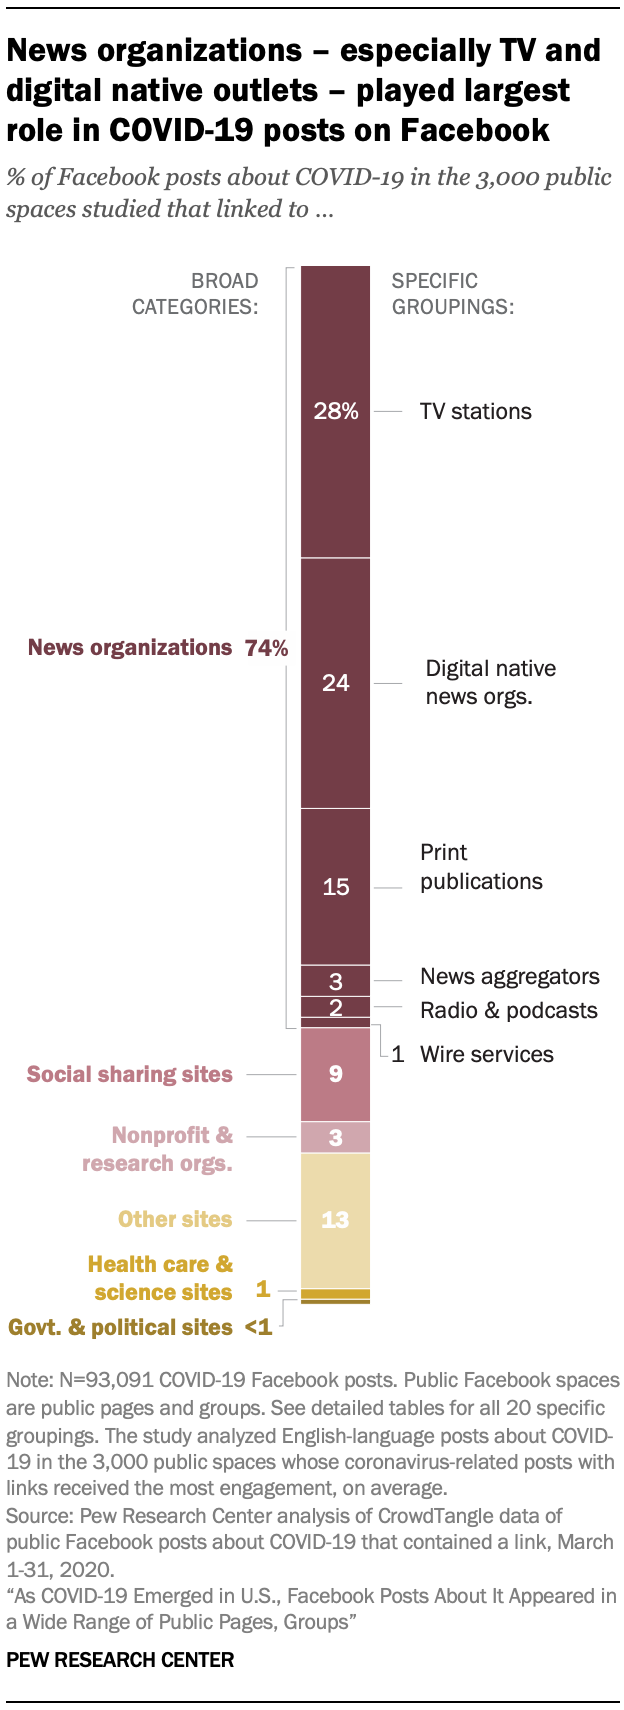 News organizations – especially TV and digital native outlets – played largest role in COVID-19 posts on Facebook